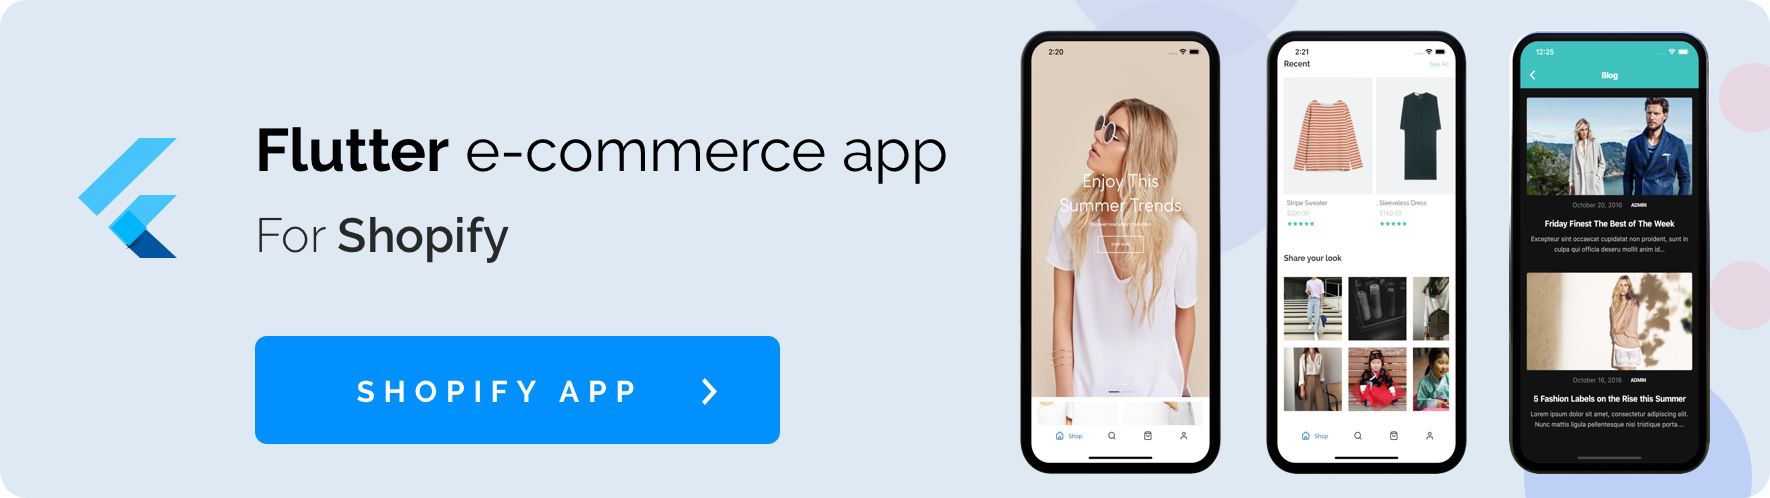 EvaStore - the complete mobile app for Shopify store by React Native and GraphQL - 5